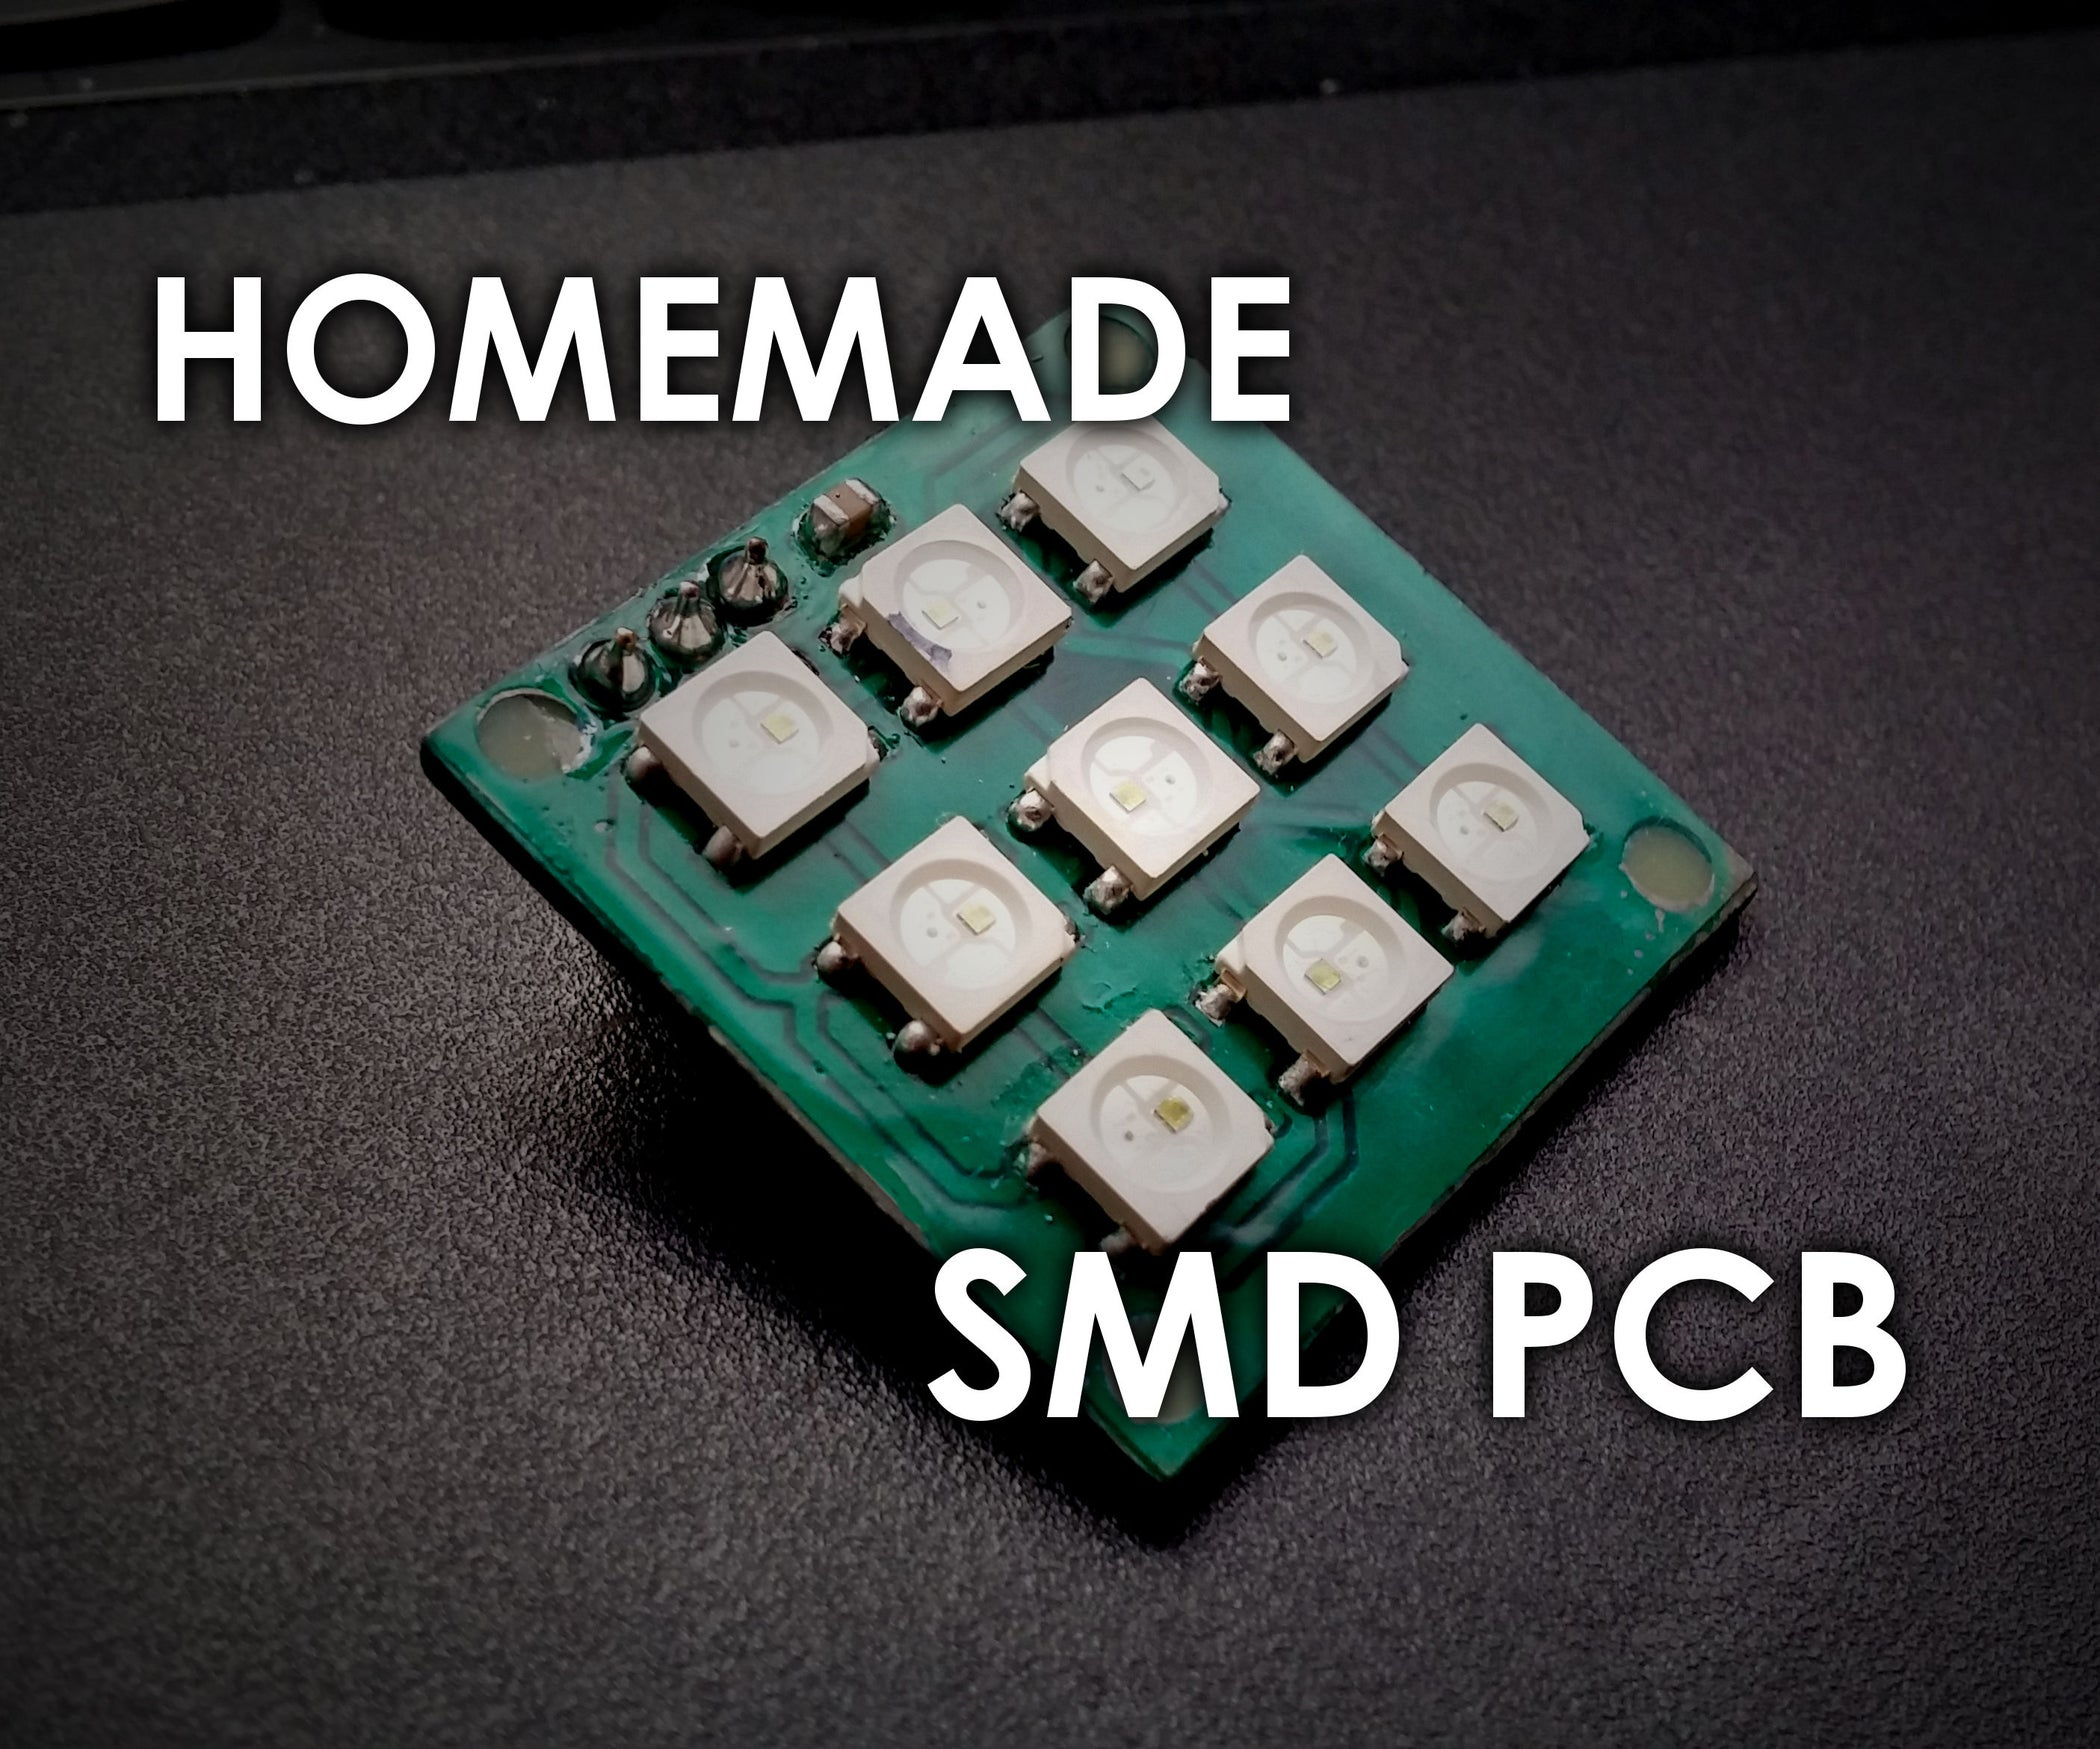 Making Smd Pcbs At Home Photoresist Method 12 Steps With Pictures Double Sided Pcb 2layer Printed Circuit Boards Fabrication Of